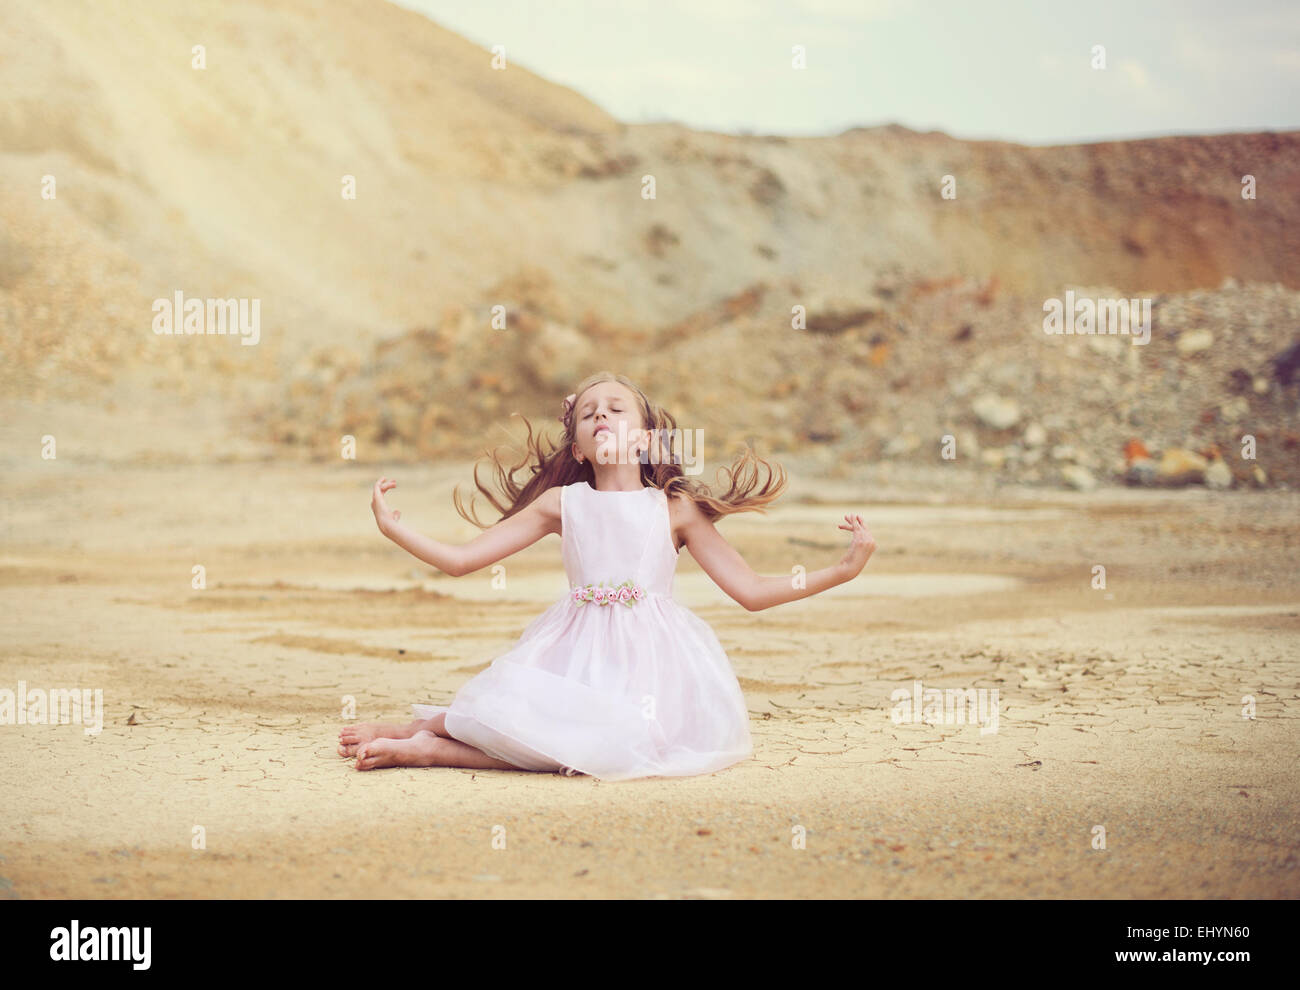 Girl sitting in the desert with her arms outstretched - Stock Image